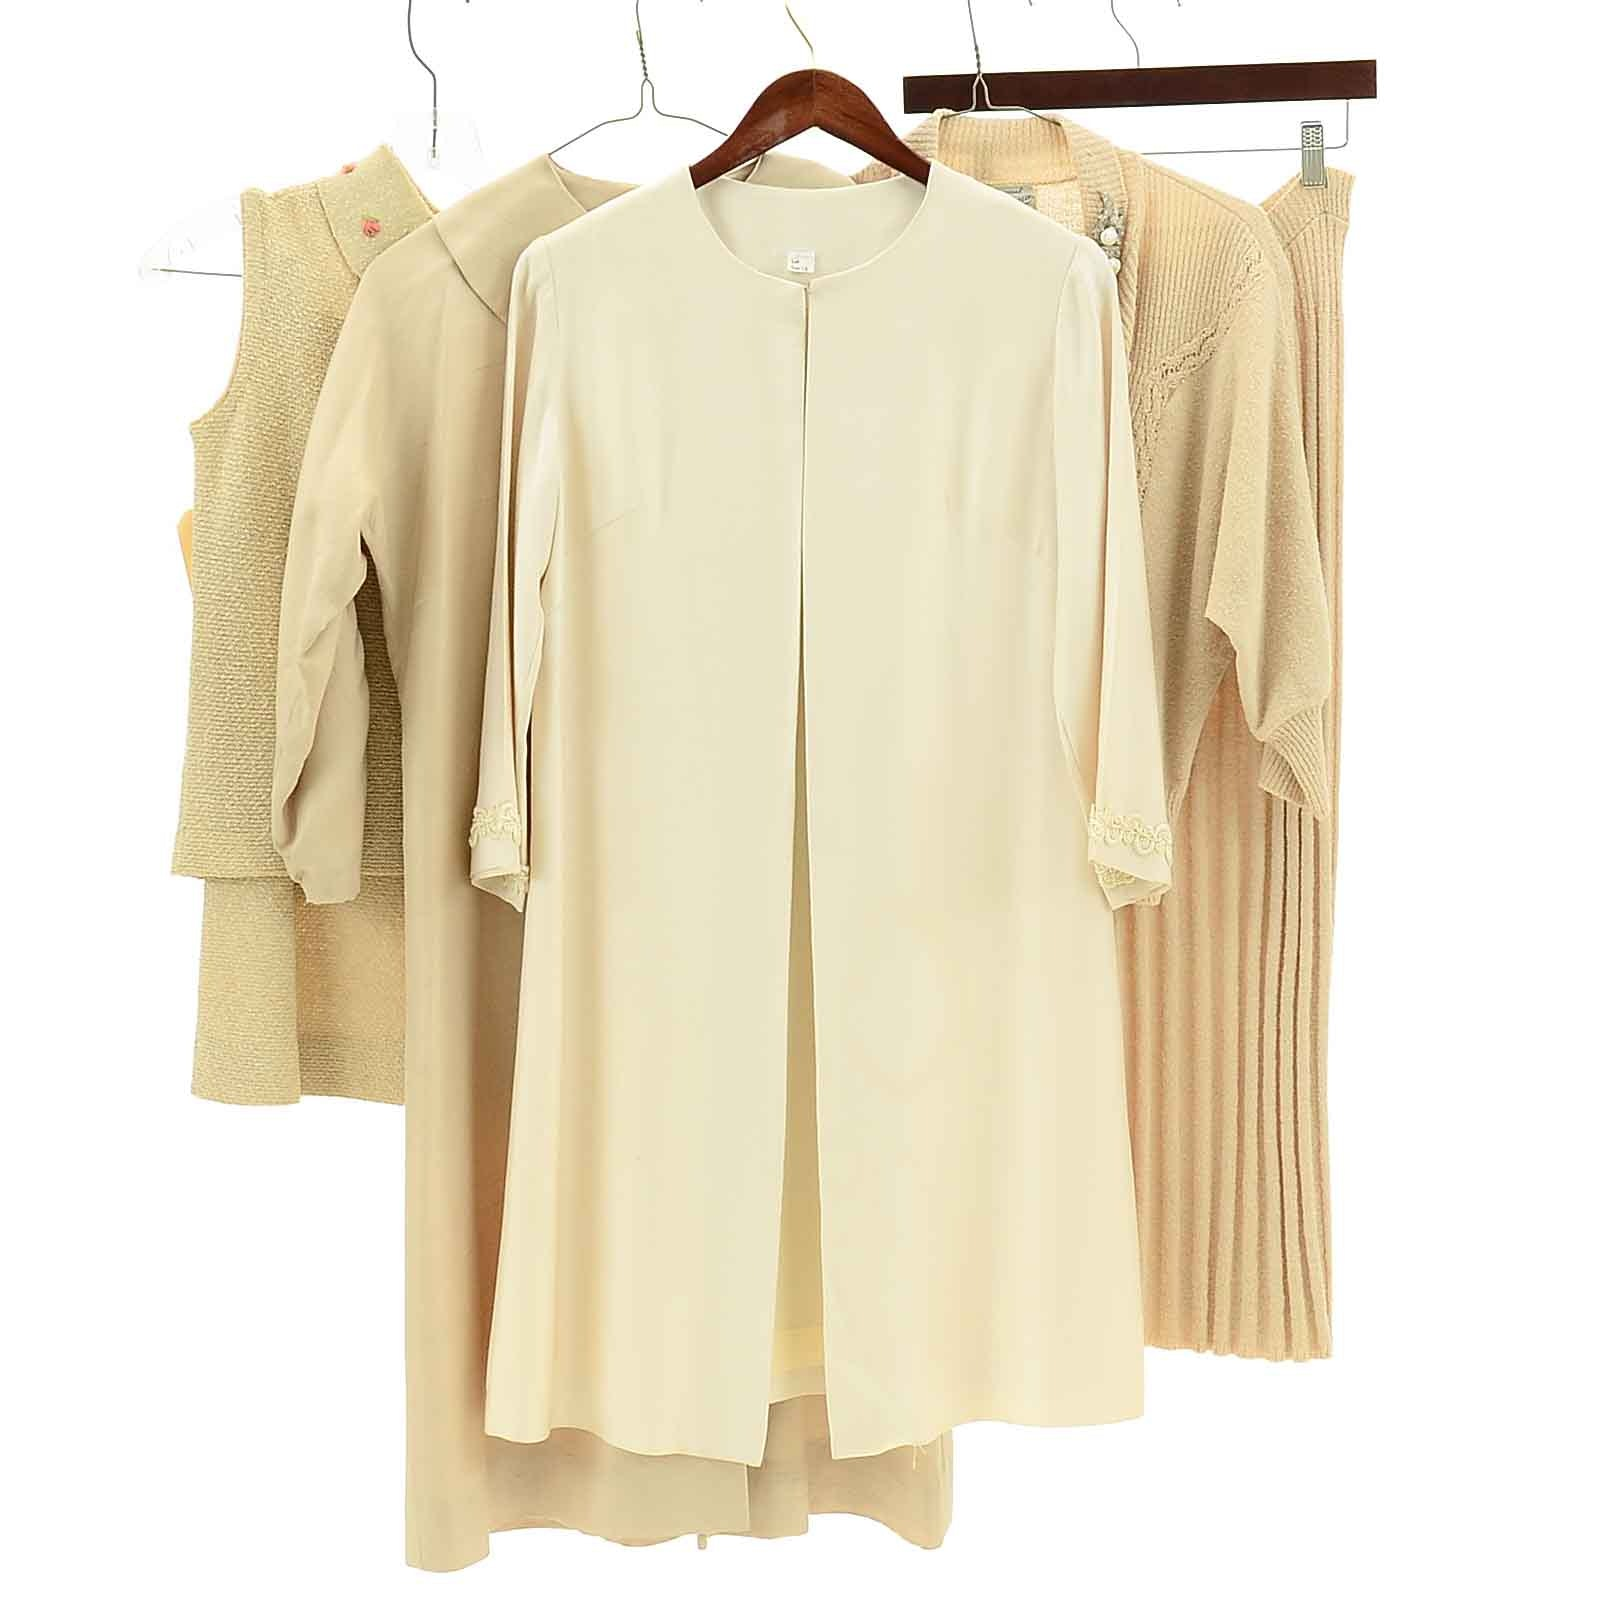 Vintage Women's Cream Skirt Sets and Jackets